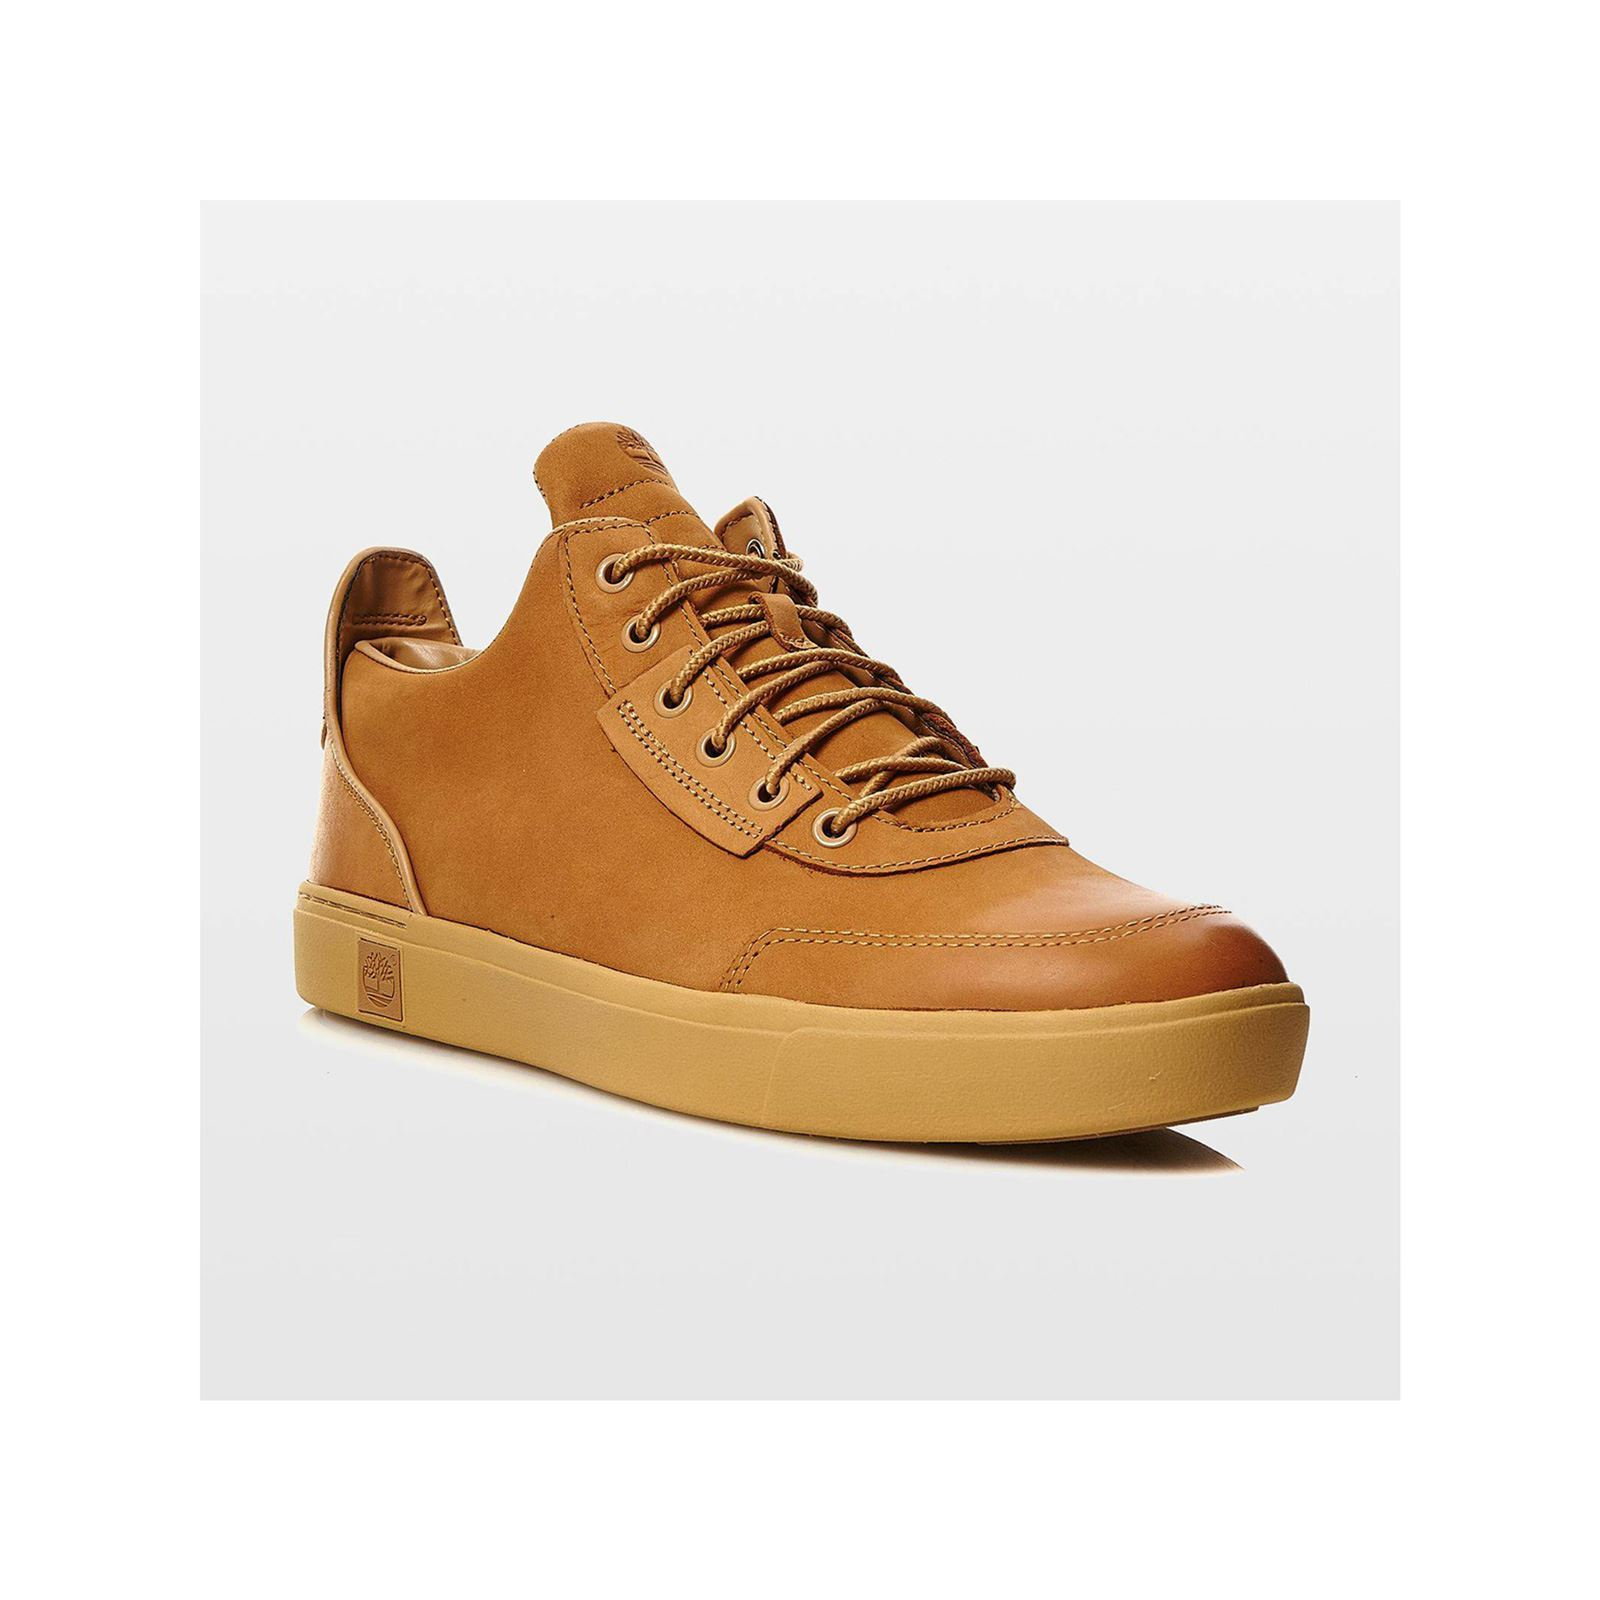 Timberland Baskets montantes Amherst High Top Chukka Camel